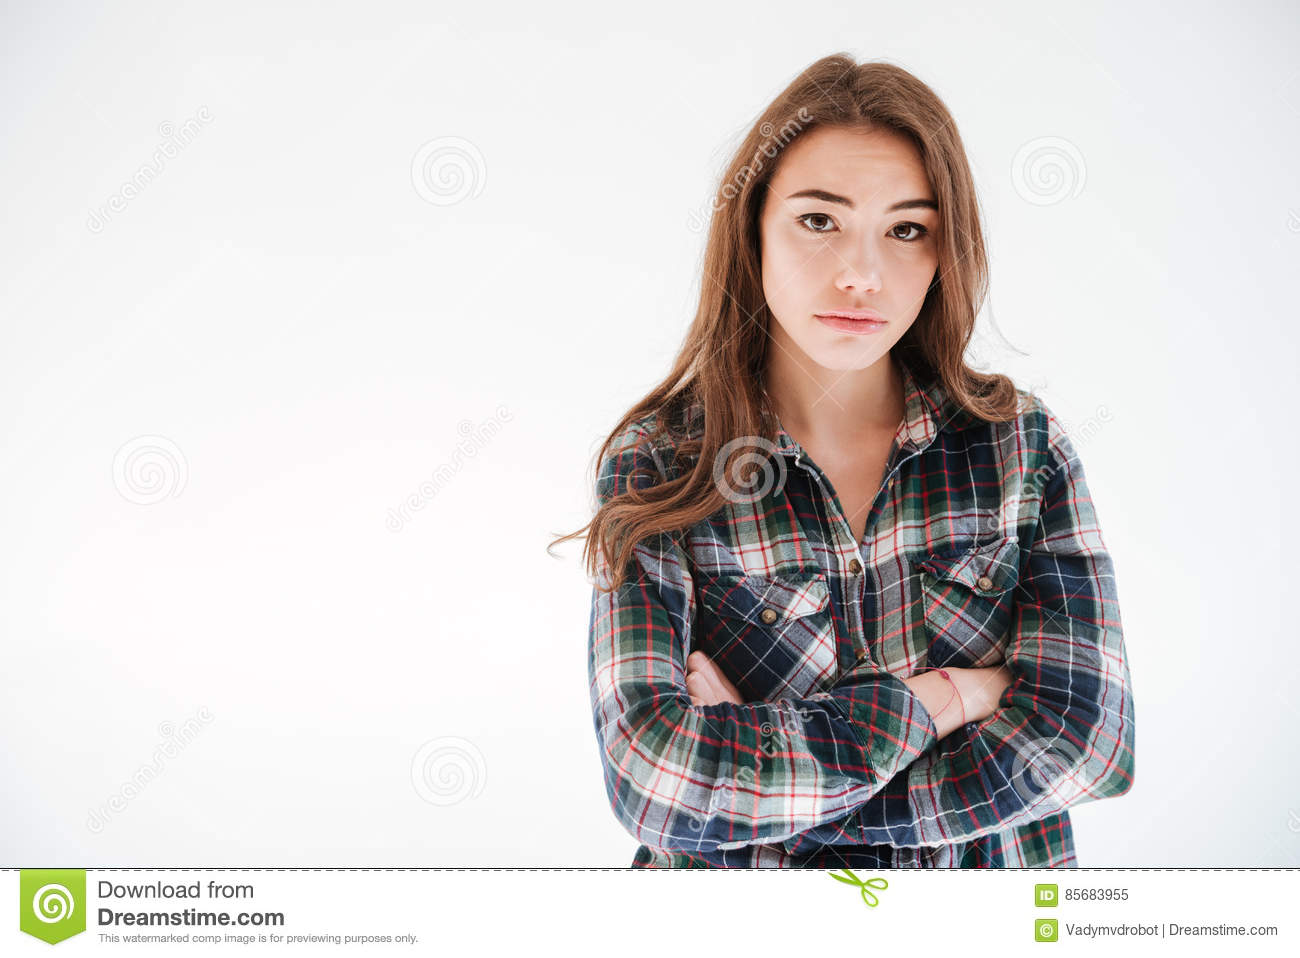 b6274109 Sad upset young woman in plaid shirt standing with arms crossed over white  background